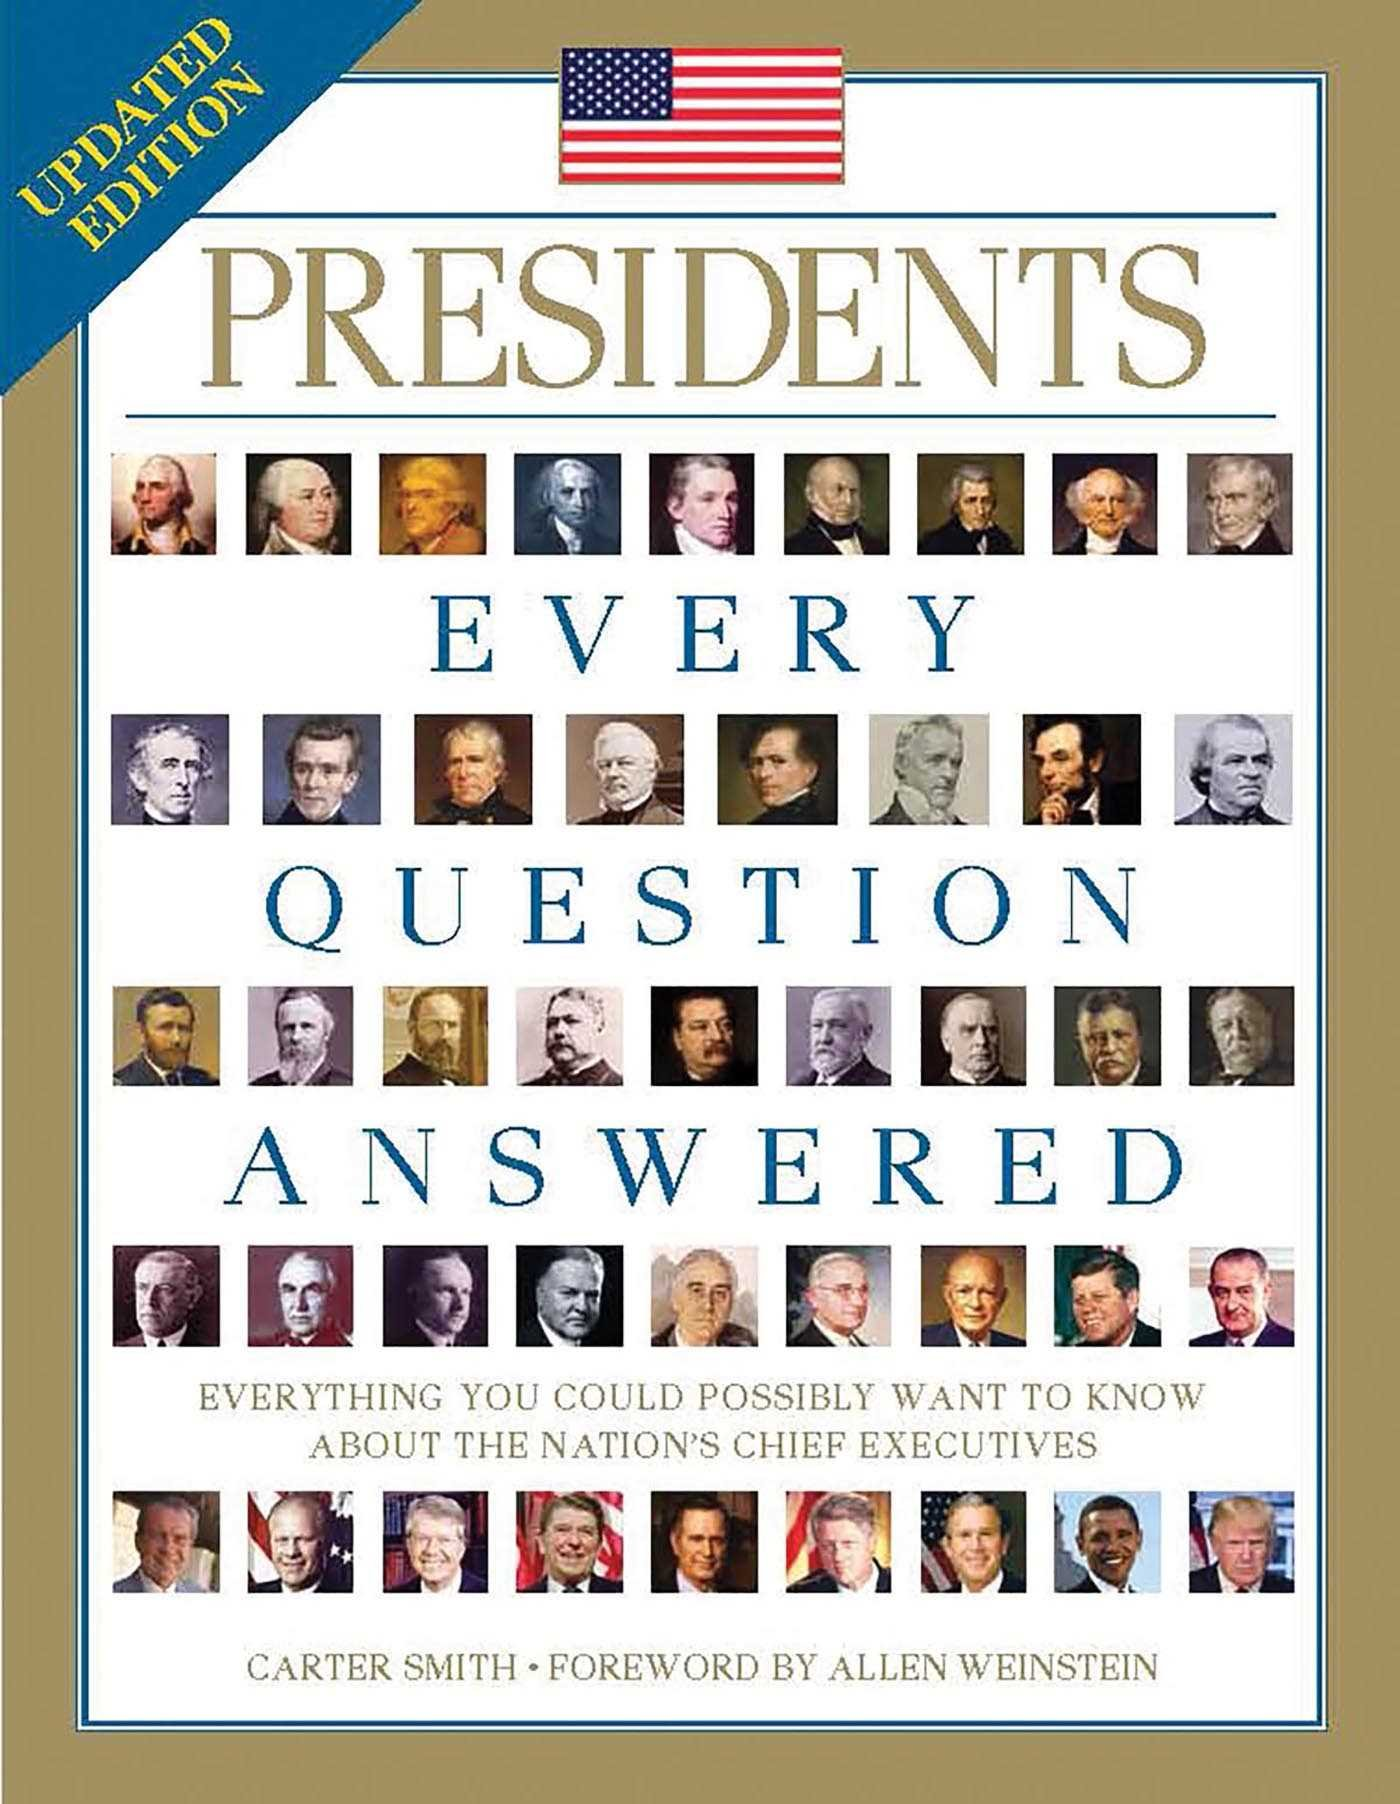 Amazon com: Presidents: Every Question Answered